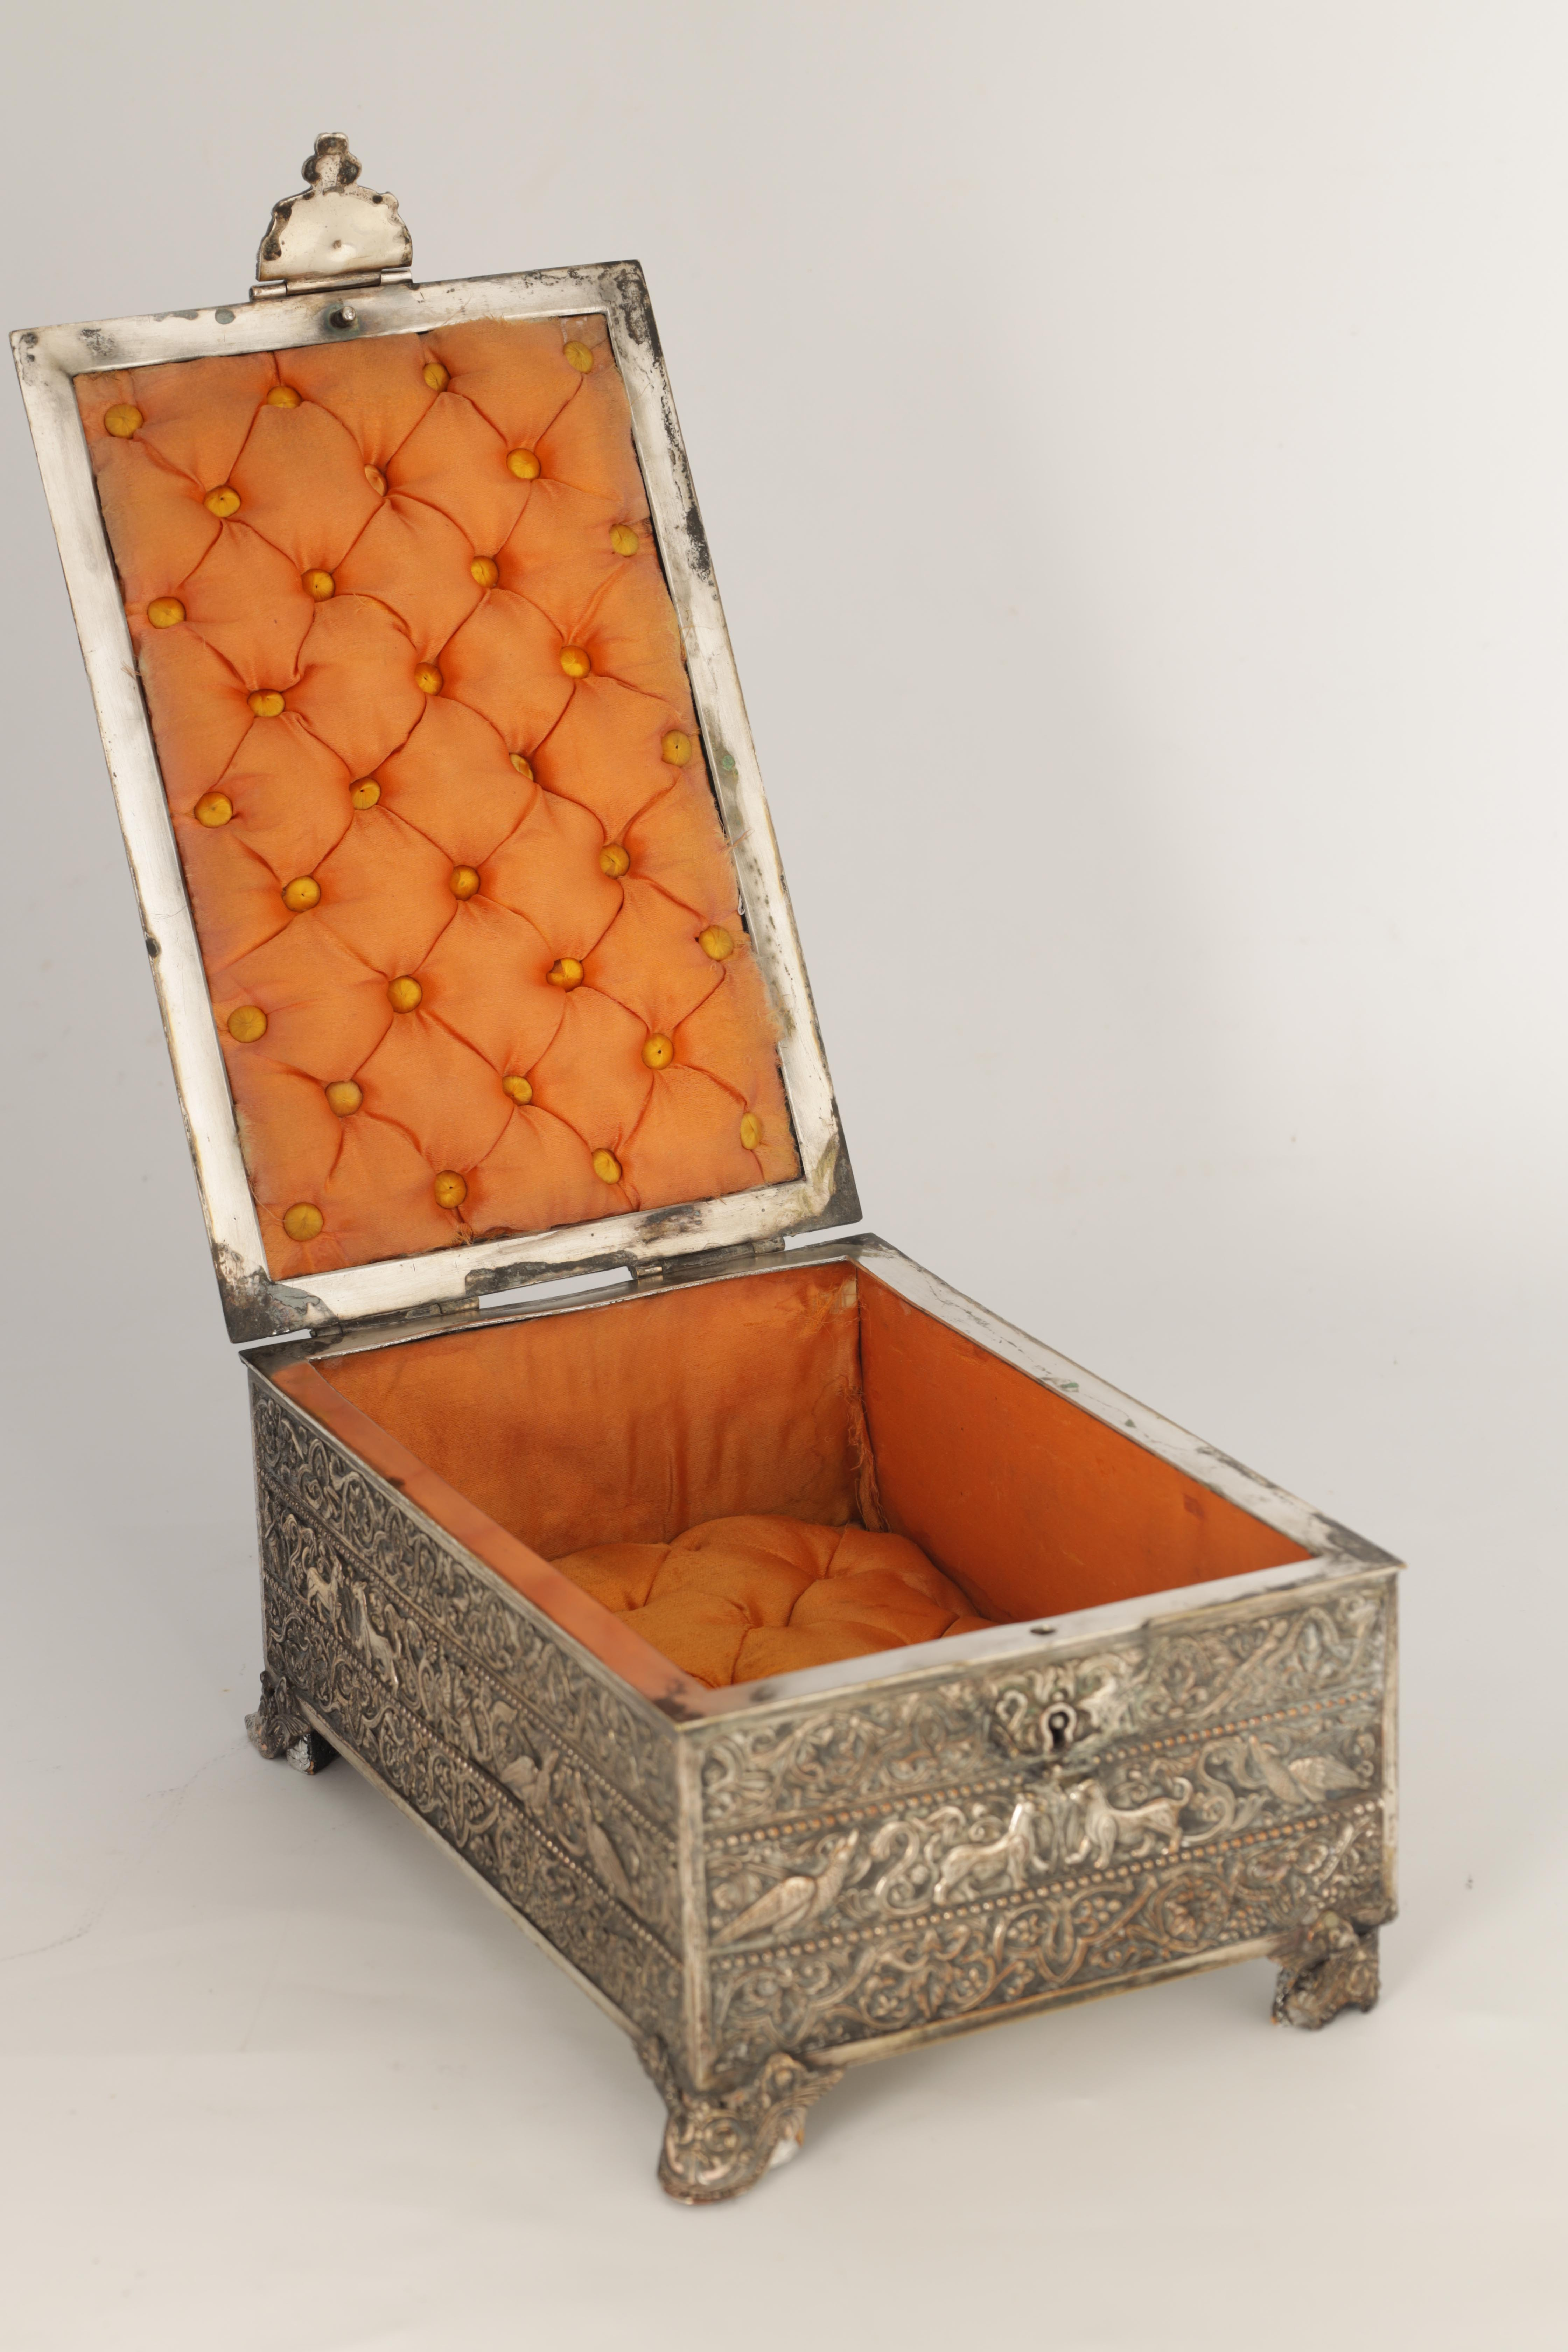 A 19TH CENTURY SILVERED BRONZE JEWELLERY CASKET the lid with intricate relief groups of birds, - Image 4 of 12